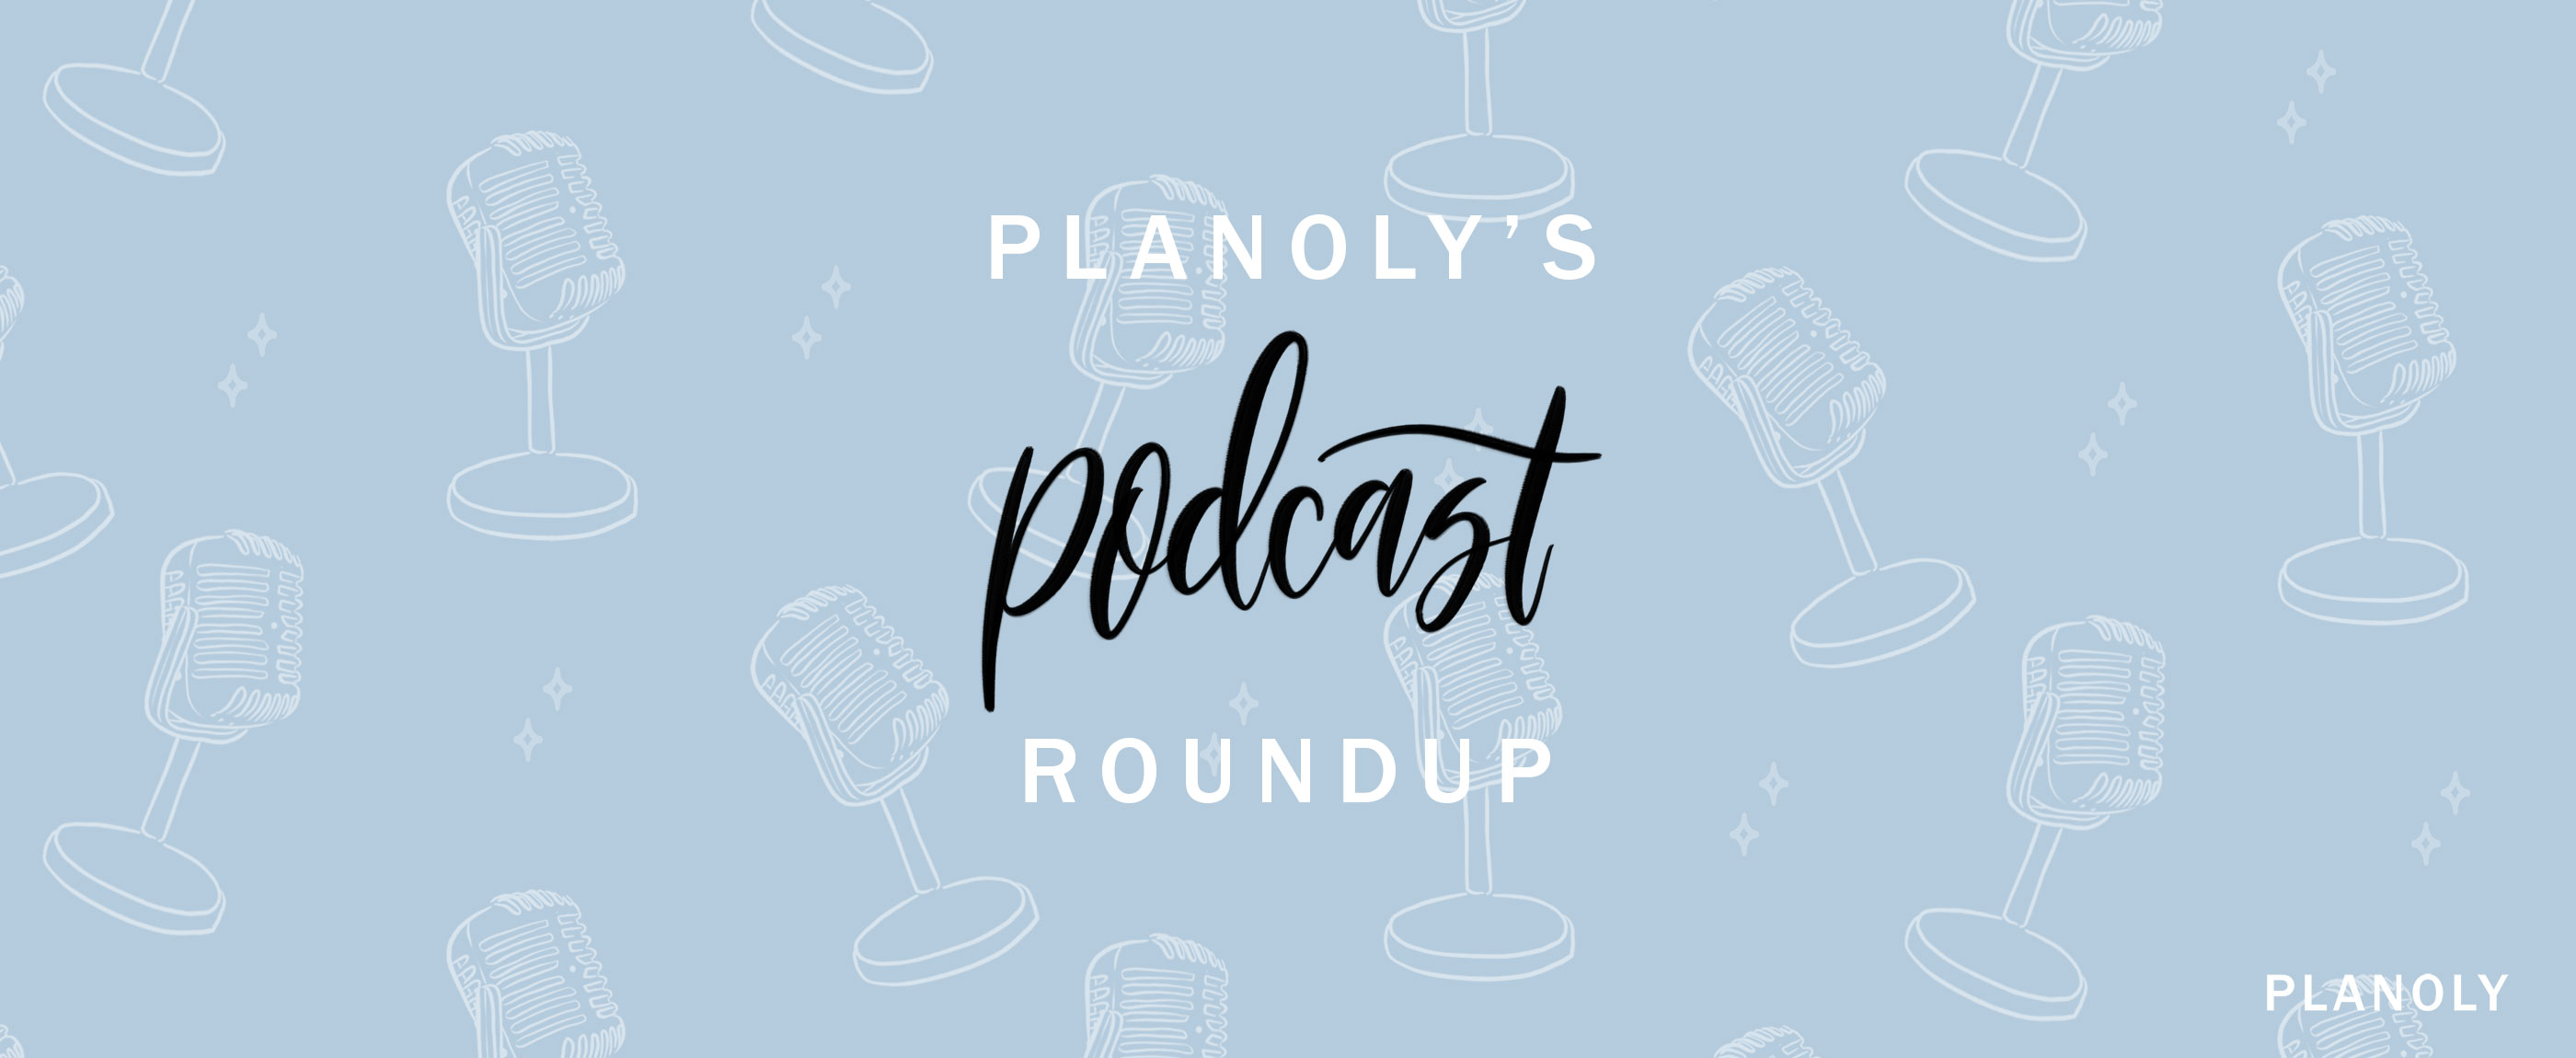 PLANOLY's Monthly Podcast Roundup